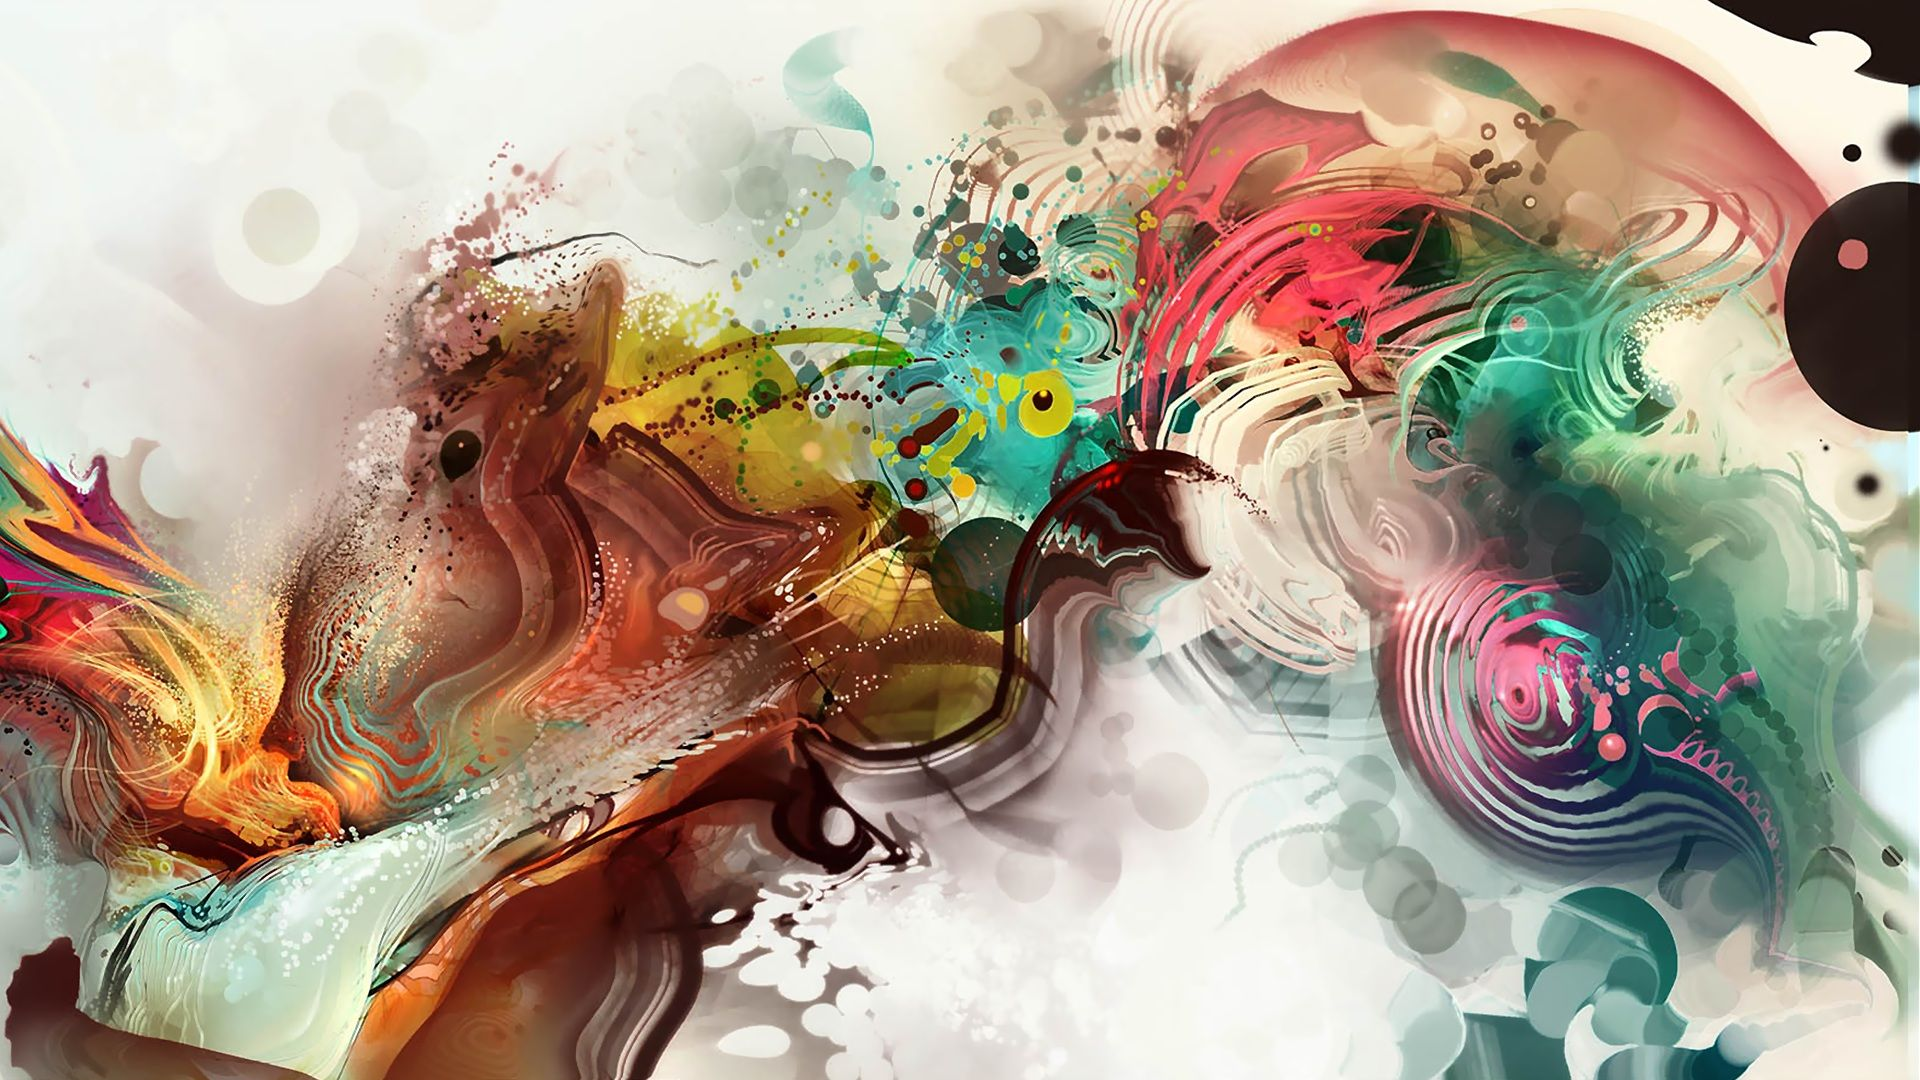 artistic abstract wallpaper hd